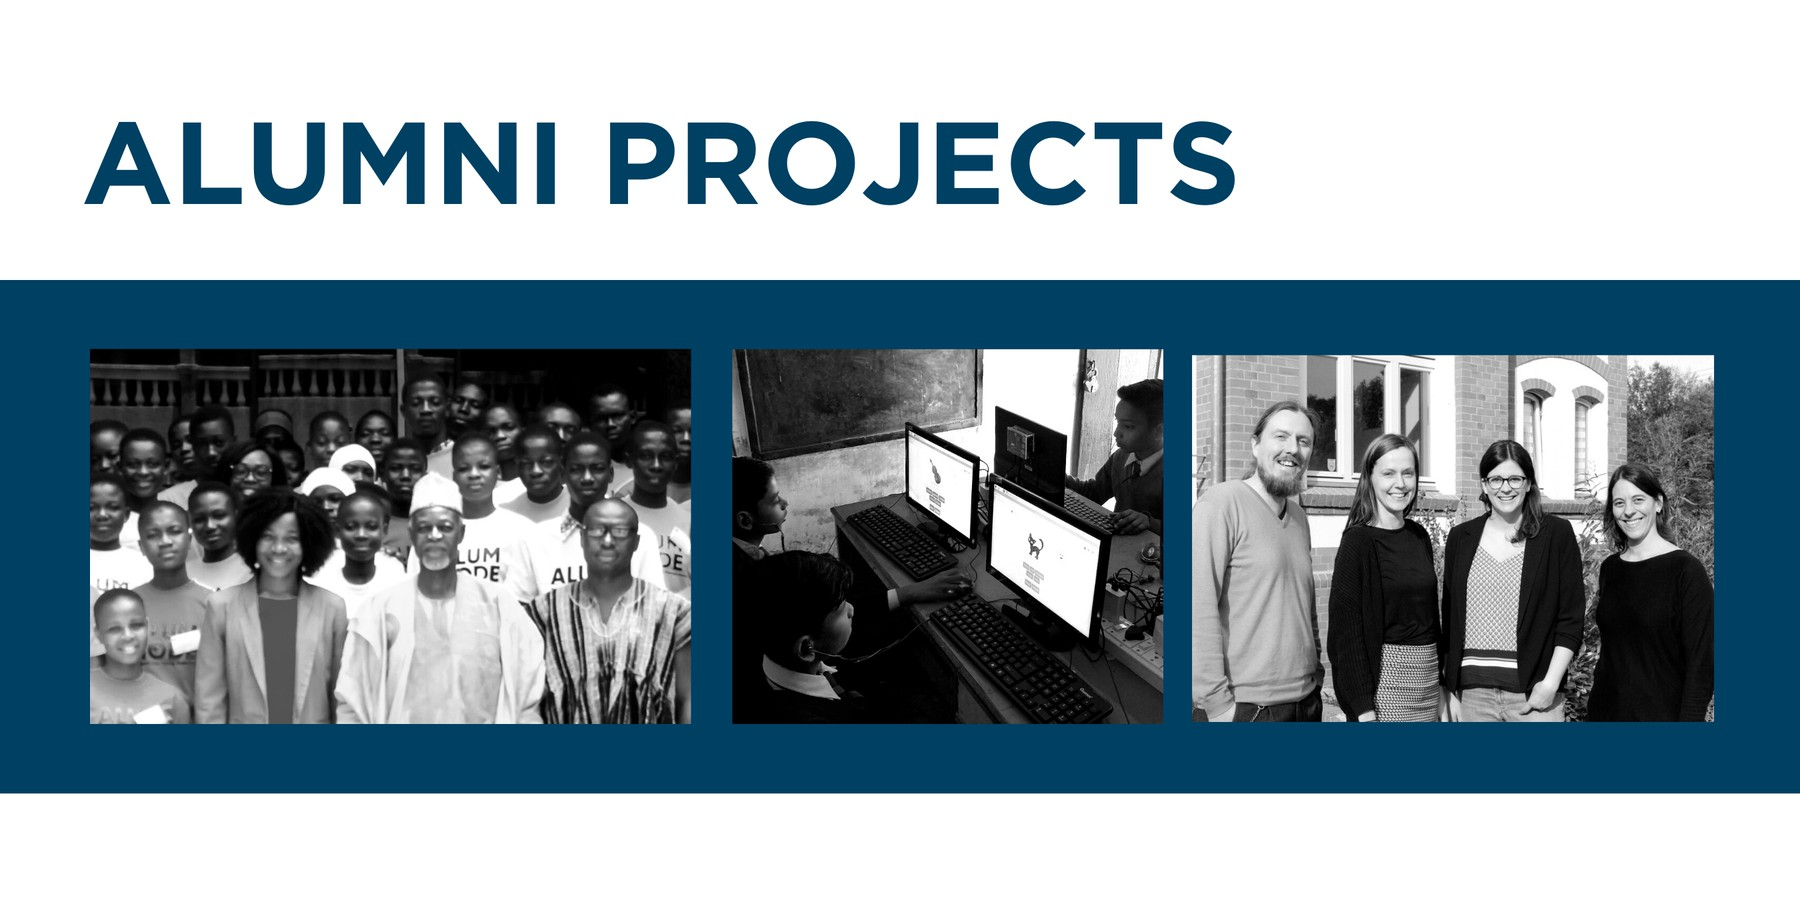 Alumni Projects - cover image